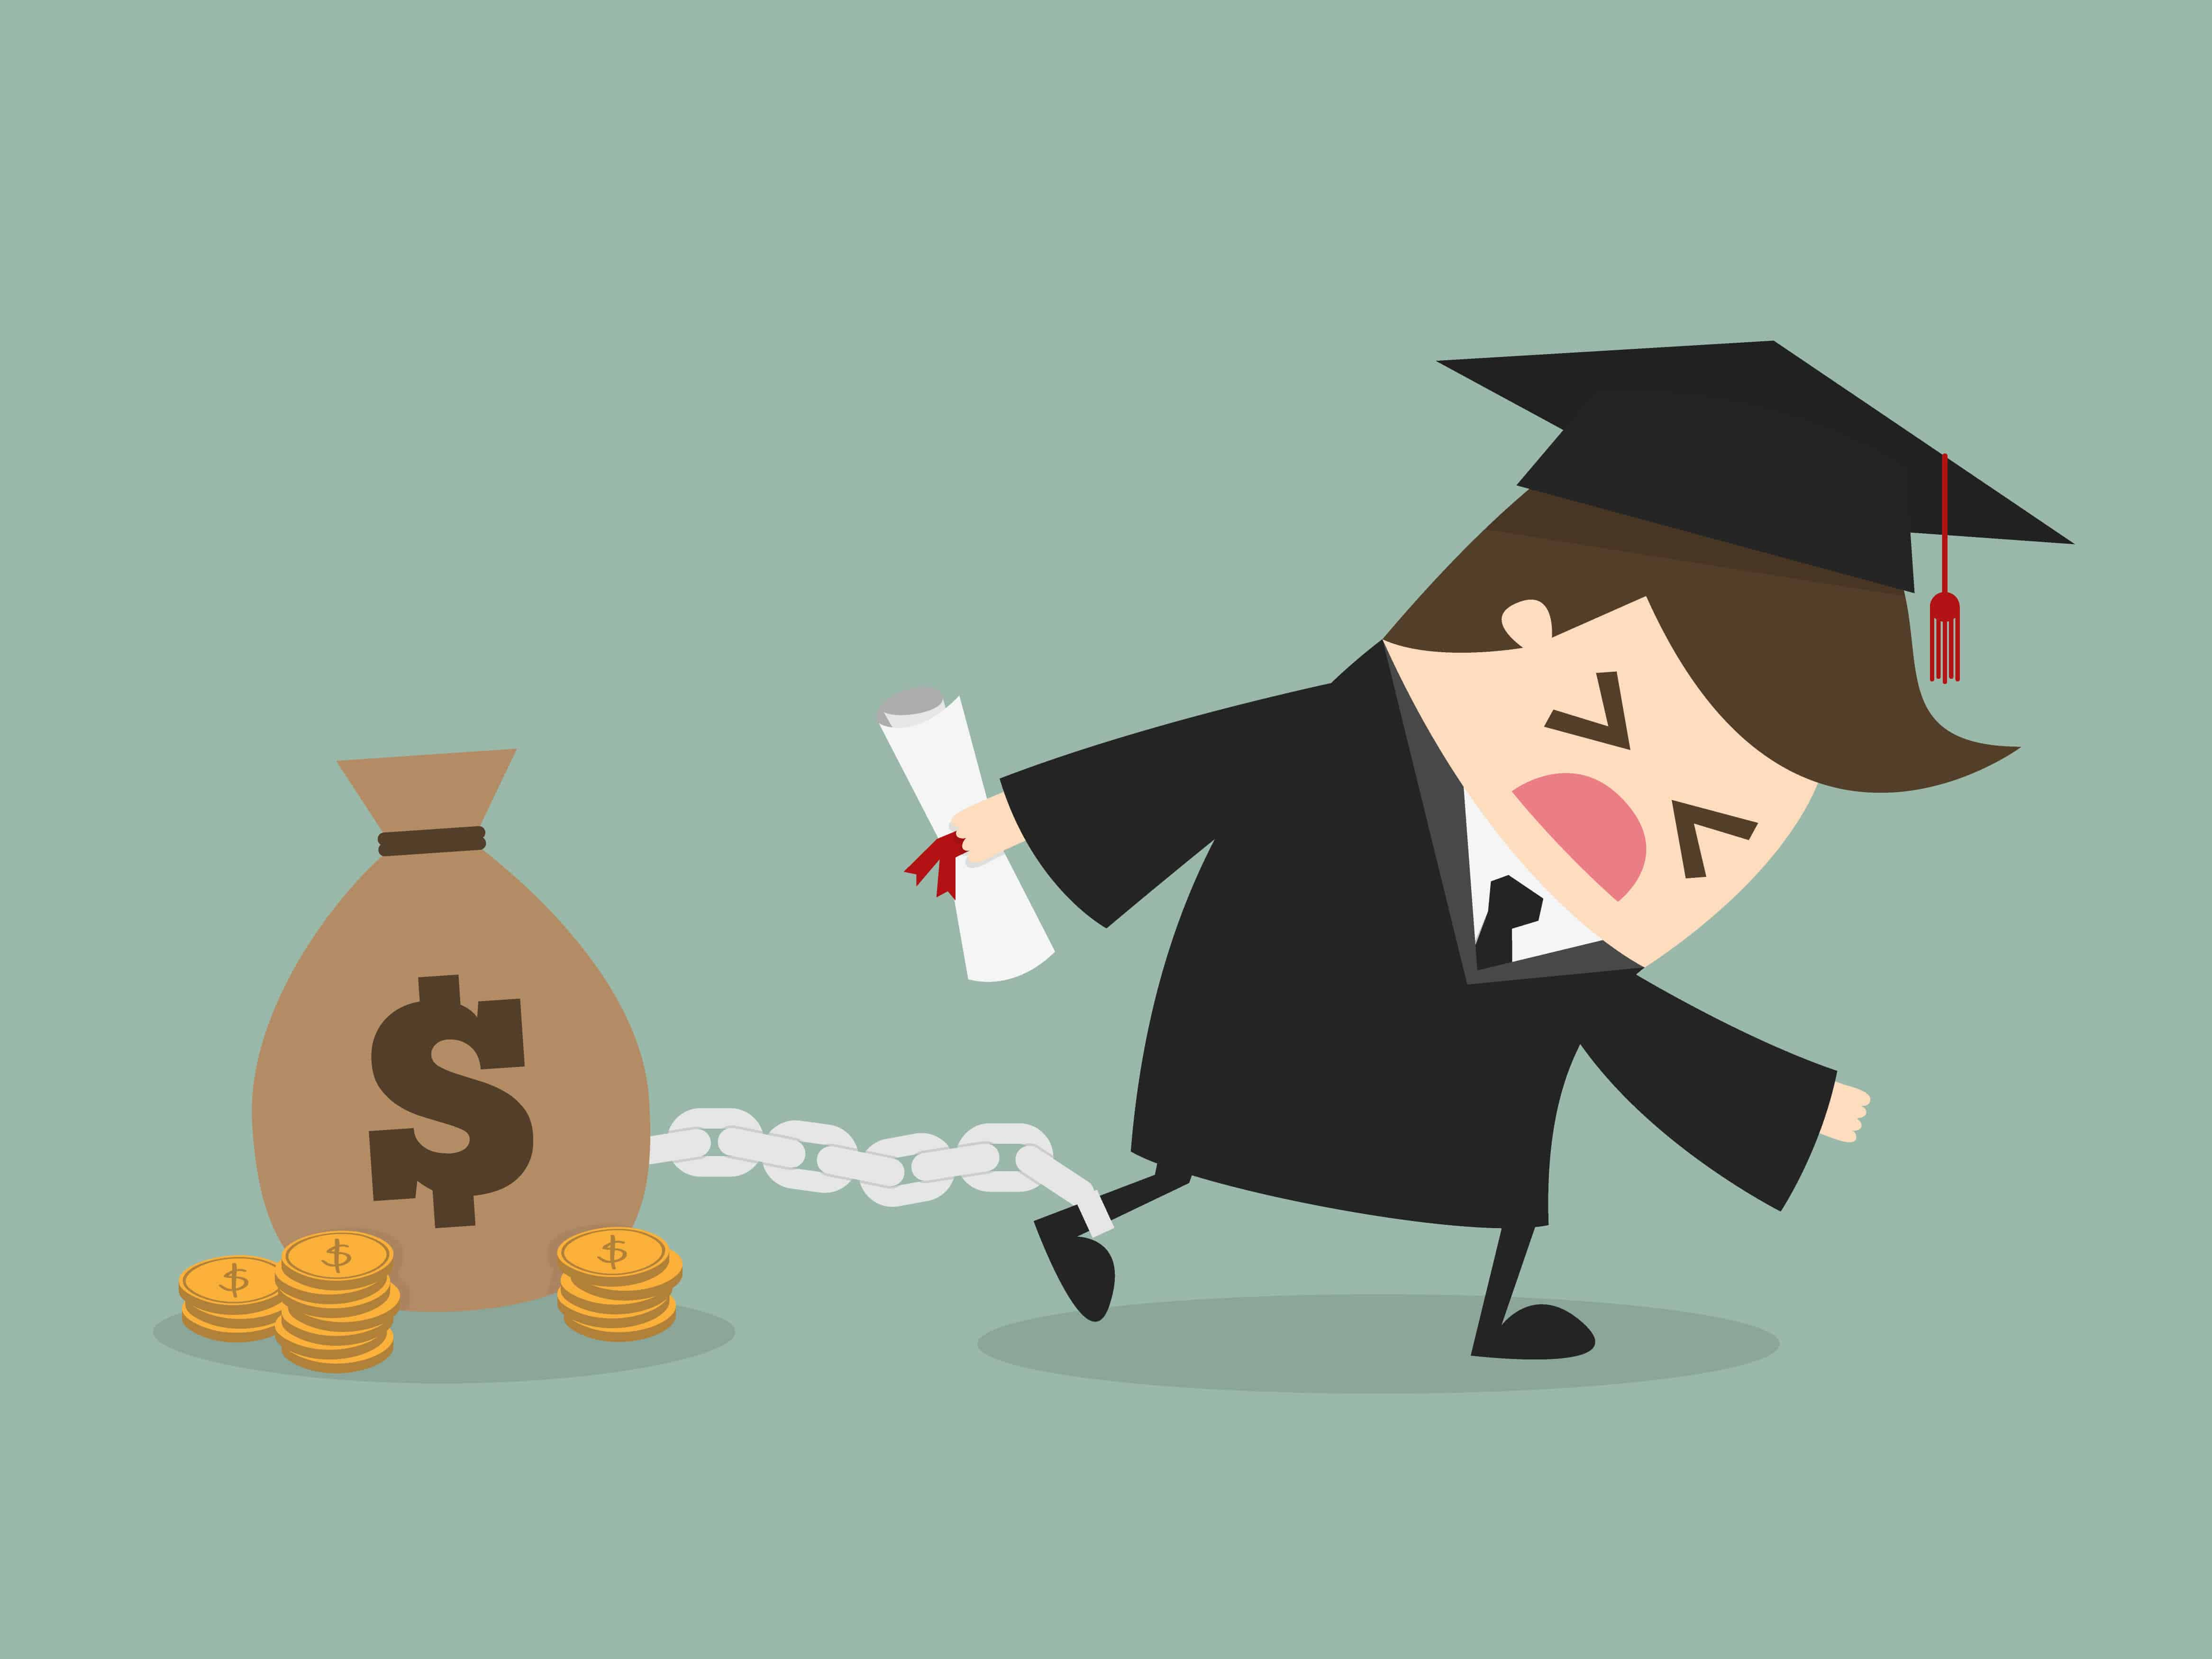 Pay what you can after graduation